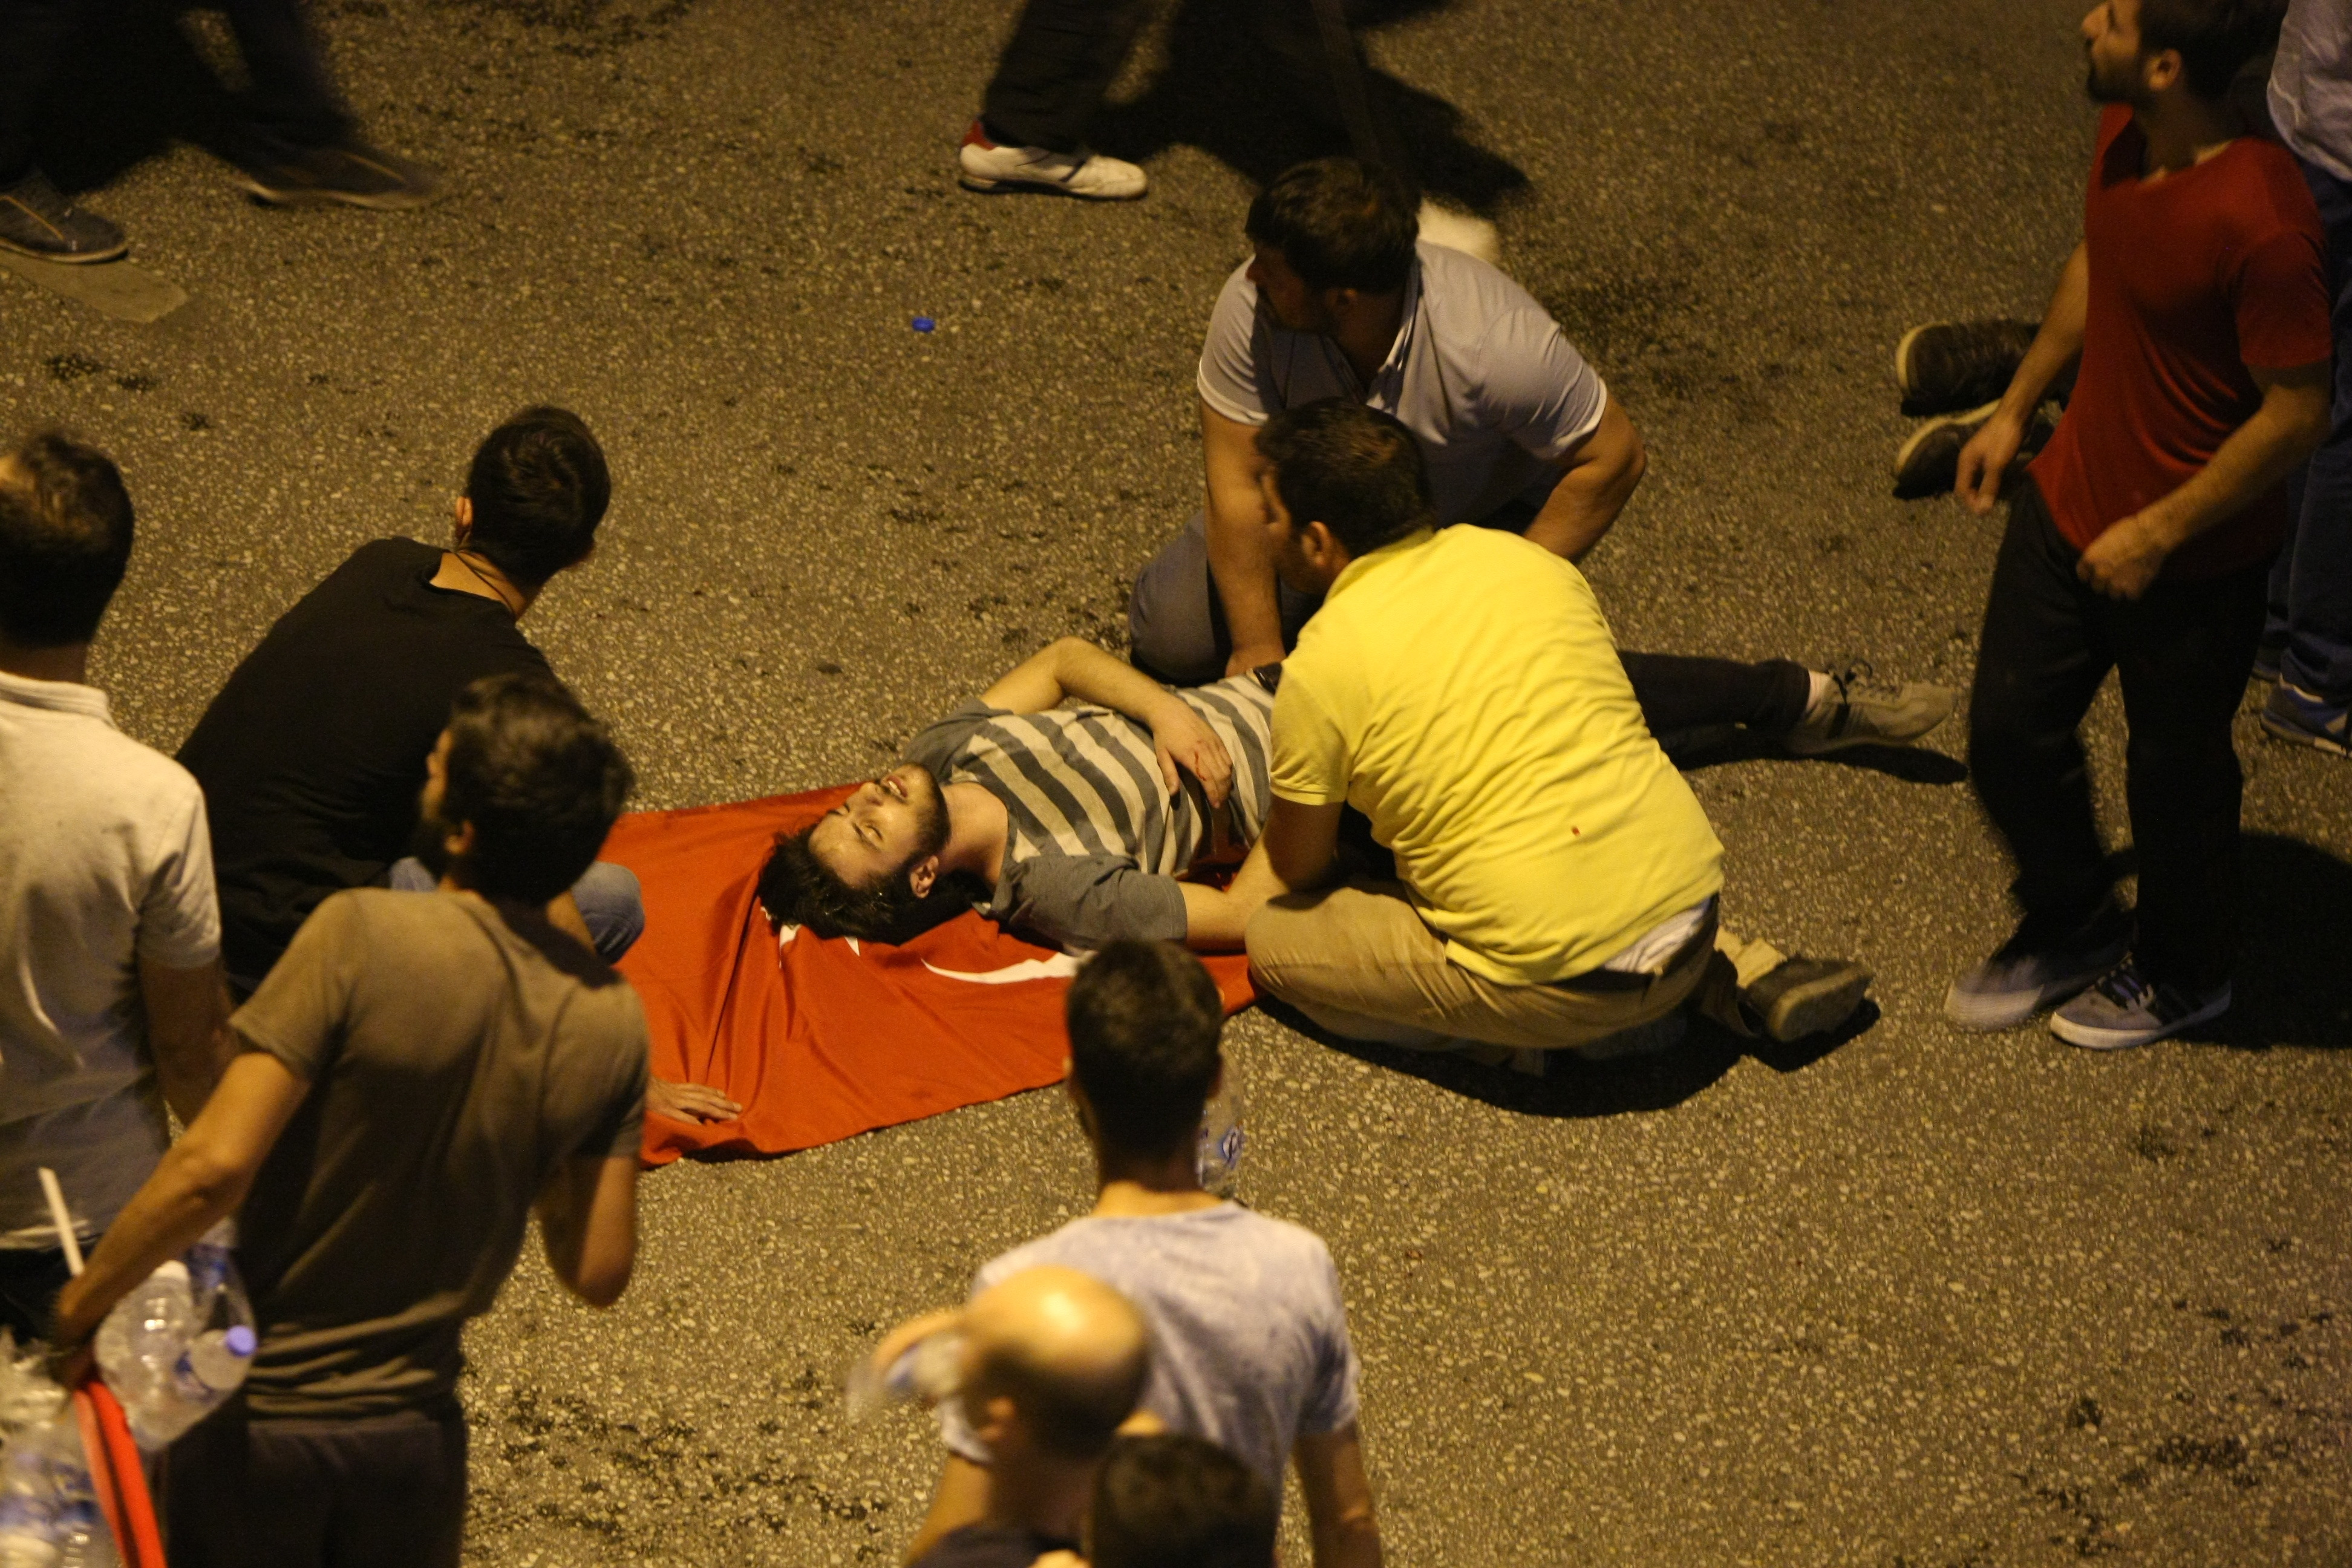 FIRST AID. People attend to a wounded person in Ankara. Photo by EPA